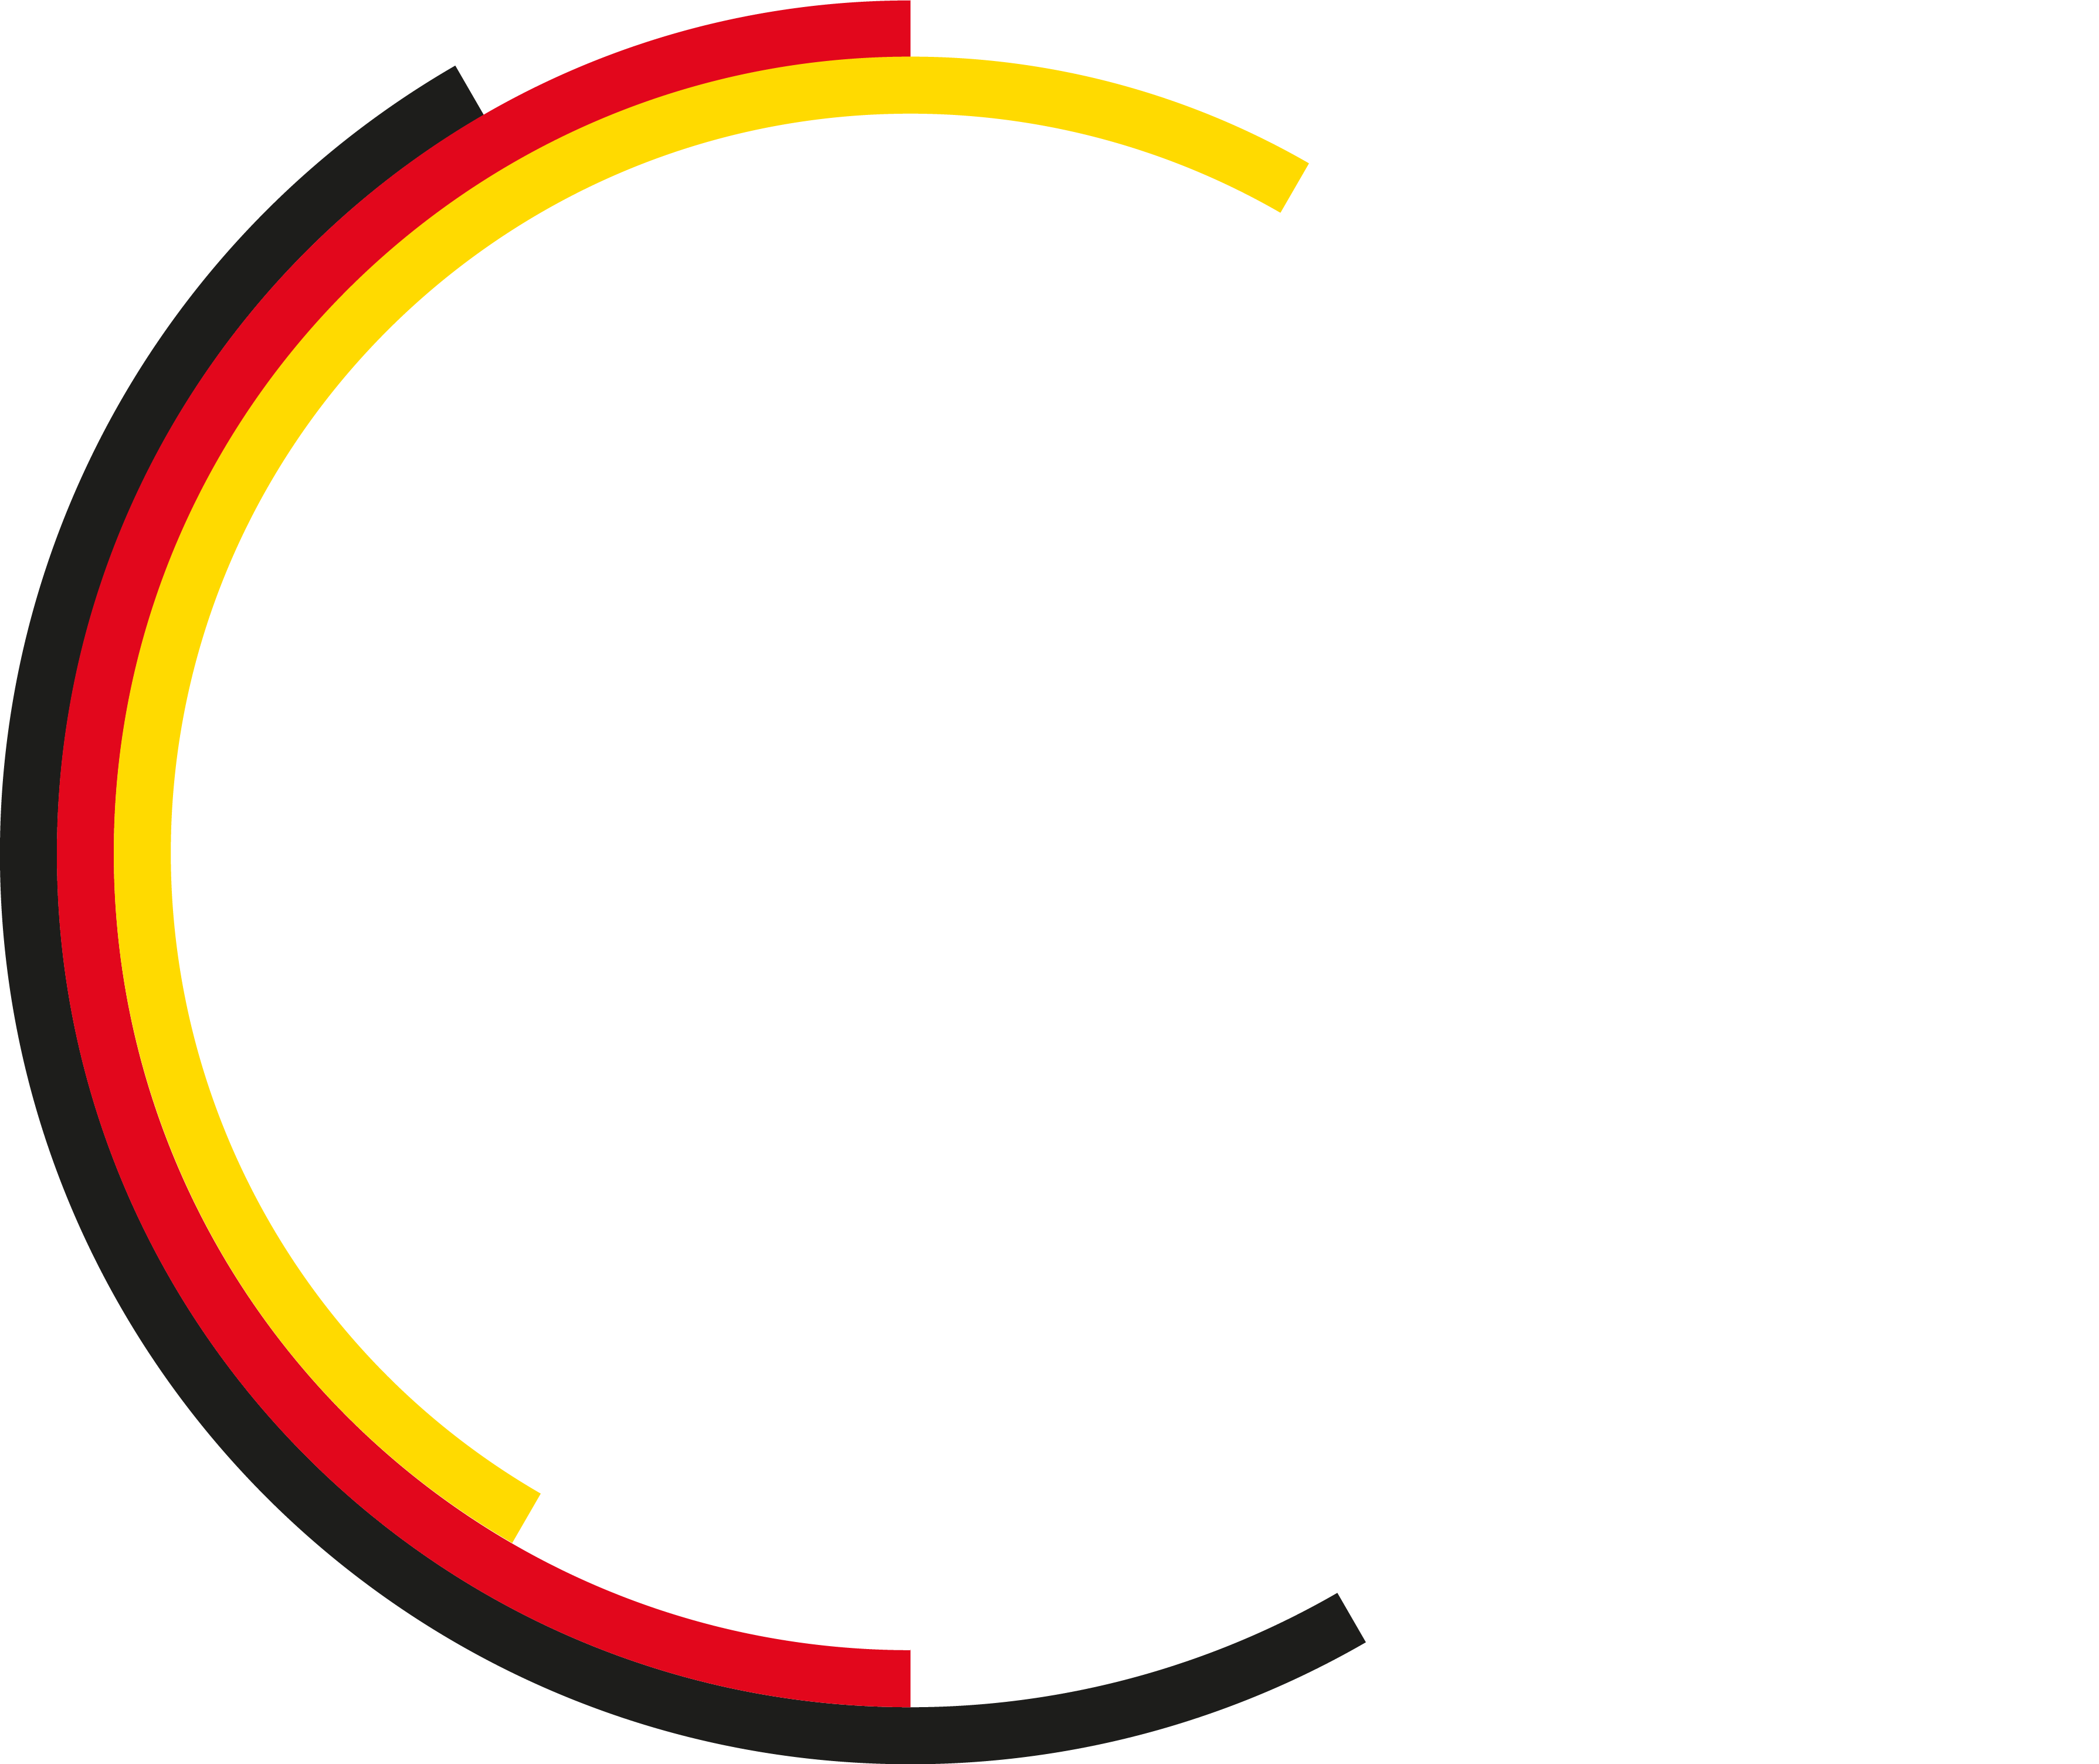 logo of our motto: designed, developed and made in Germany